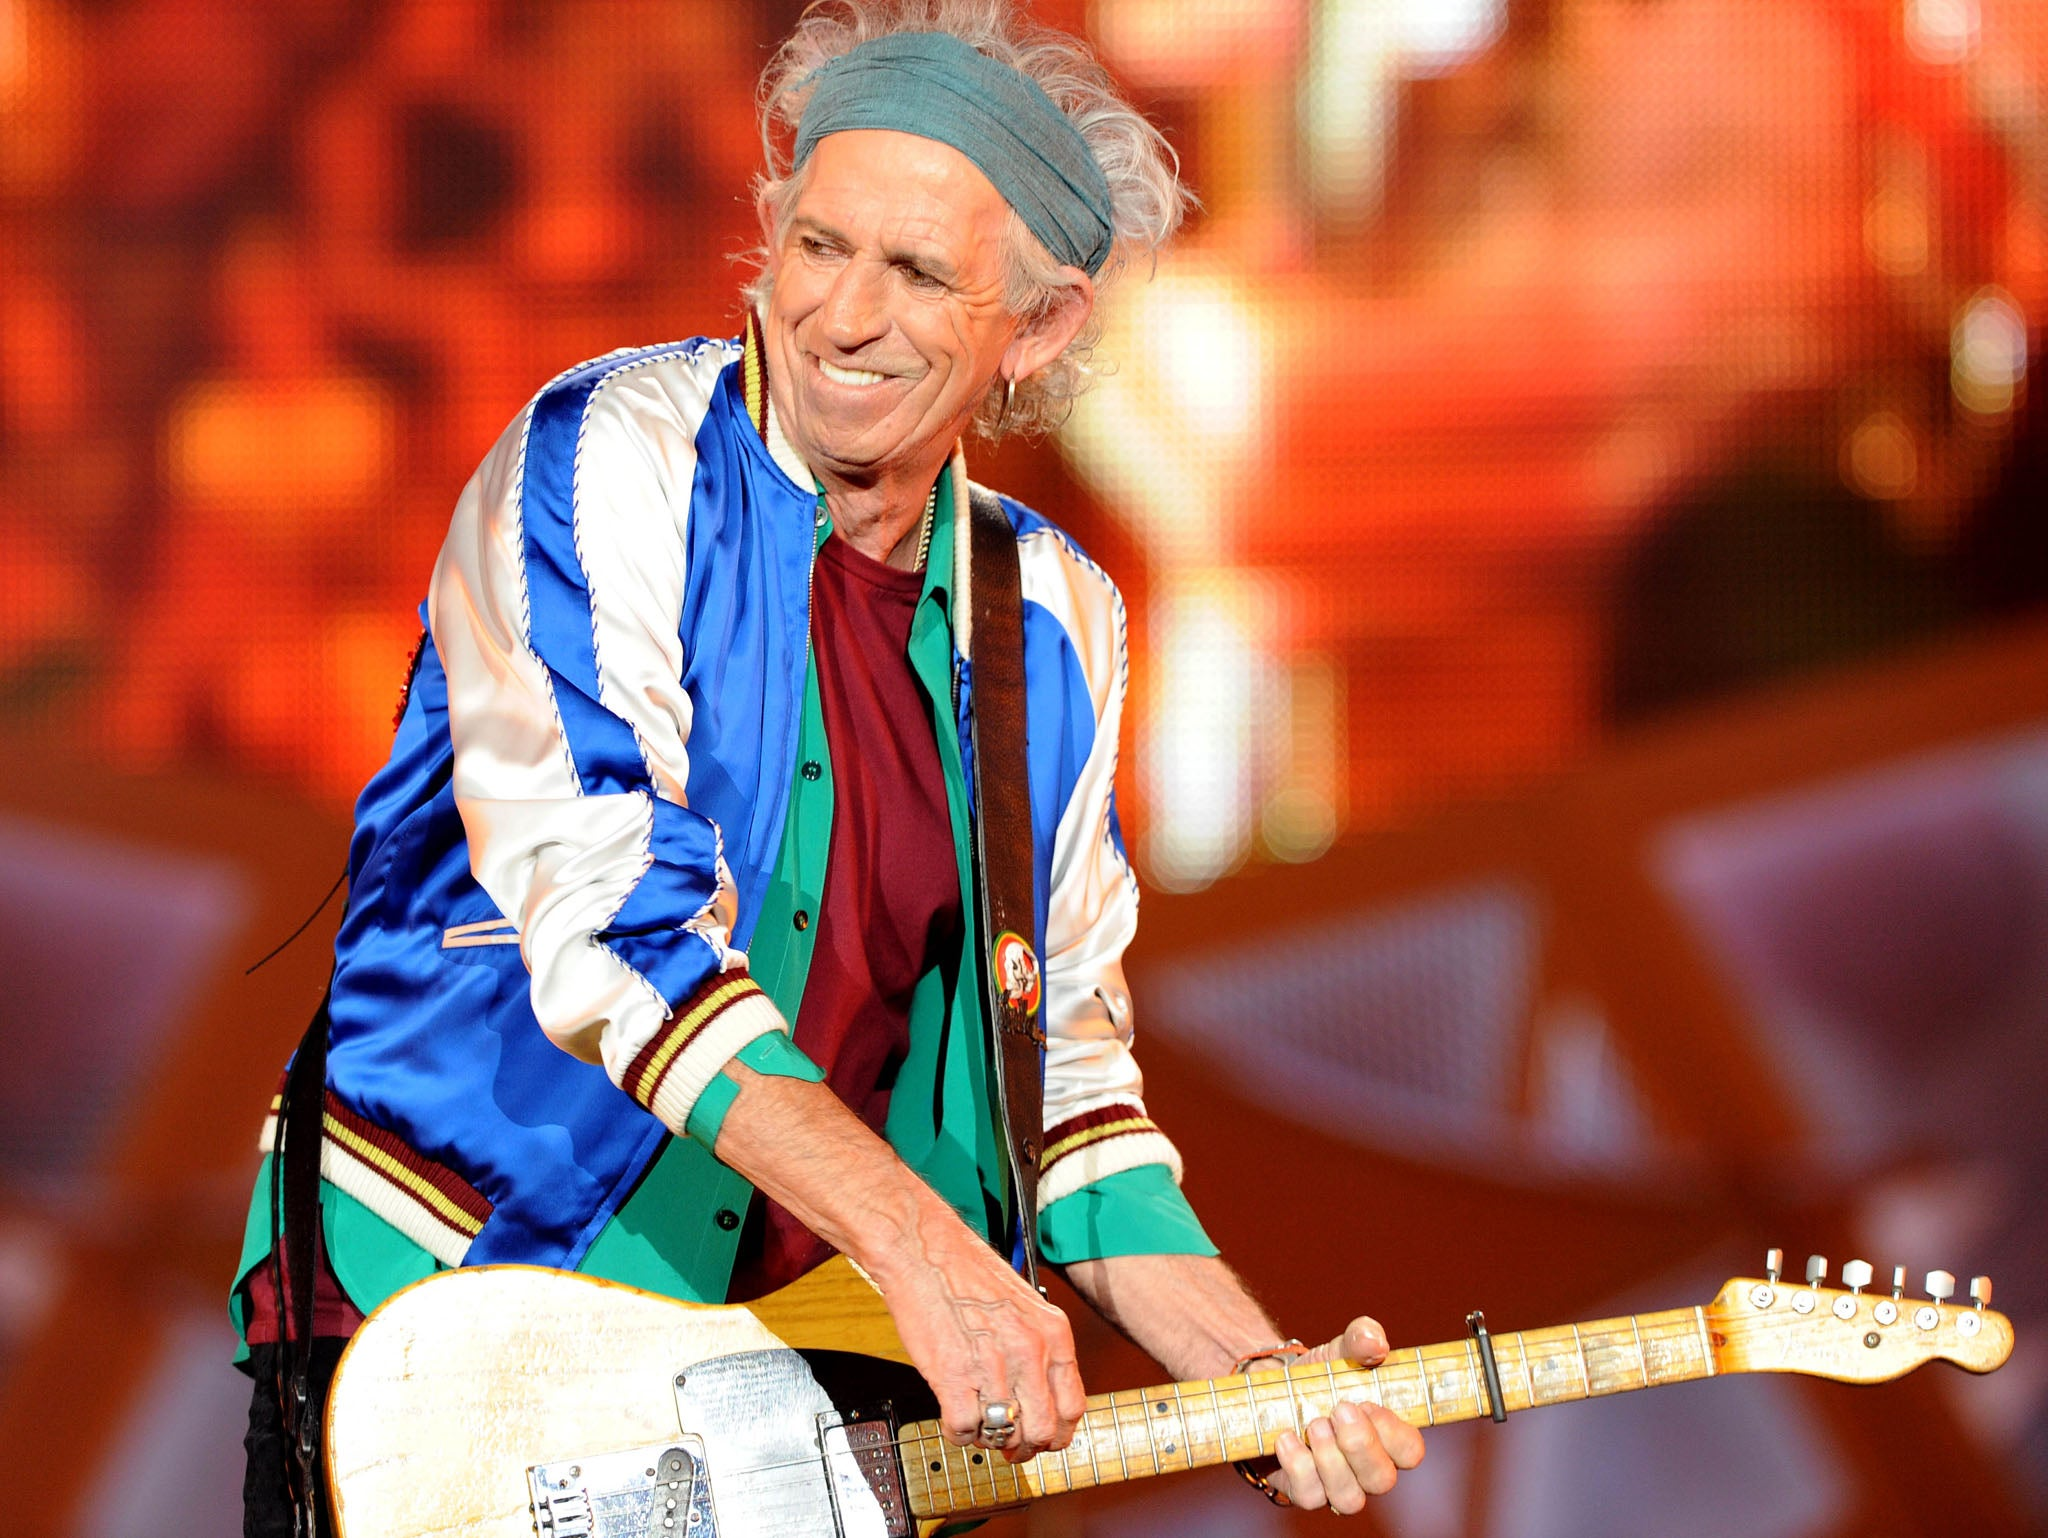 Keith Richards: Rolling Stone reveals the secret to his seeming immortality